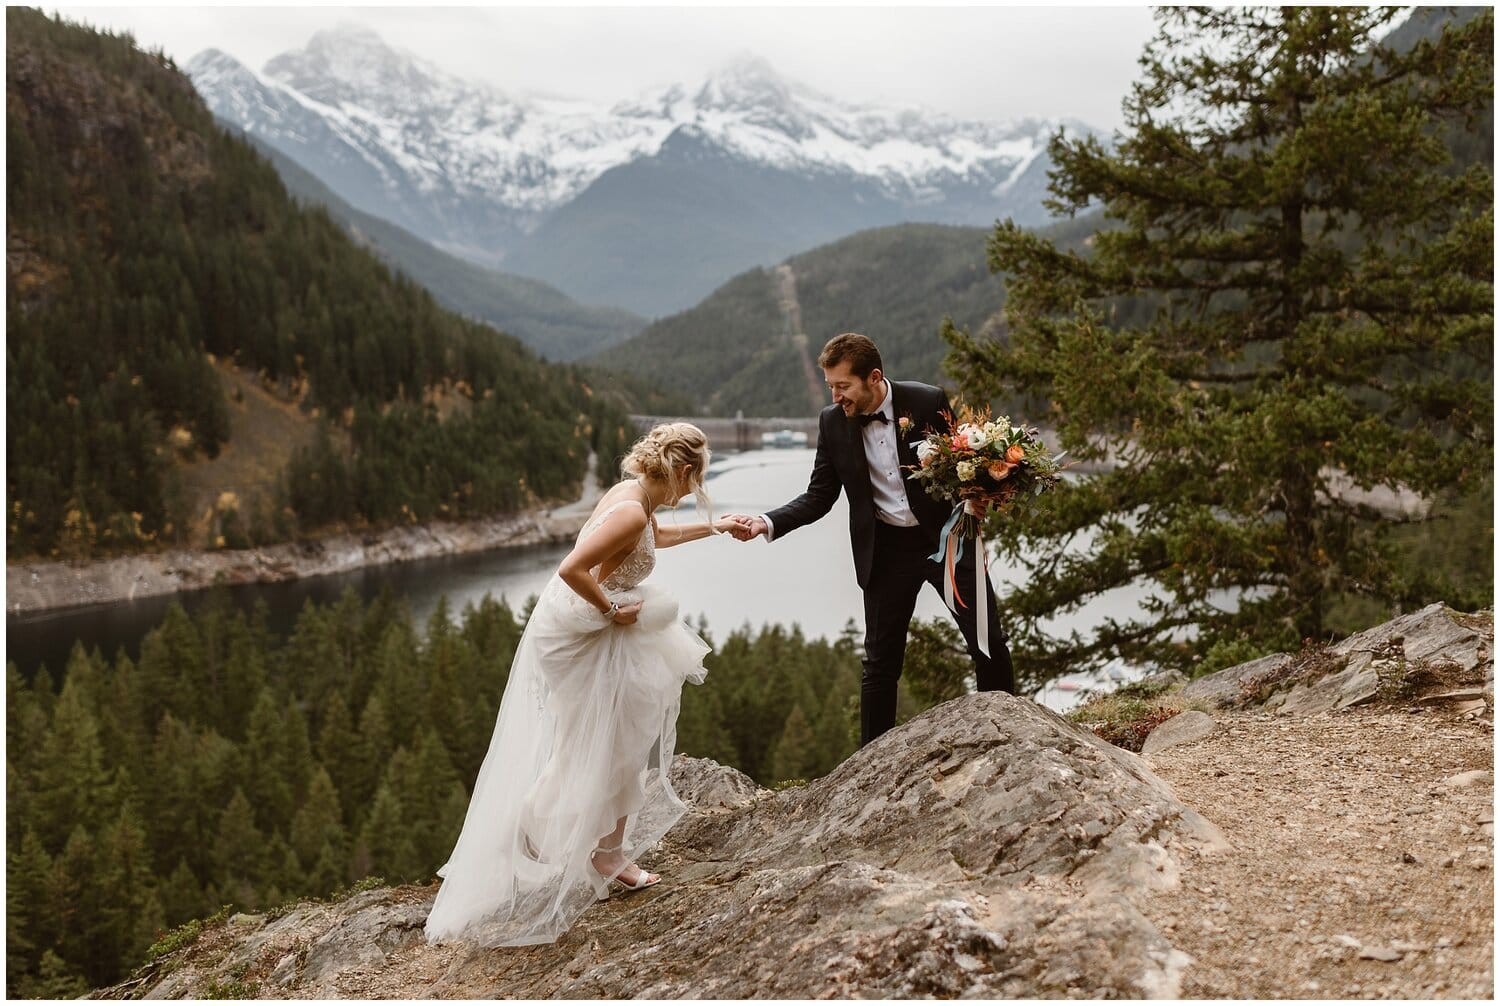 Groom helps bride climb over a rock on their wedding day.